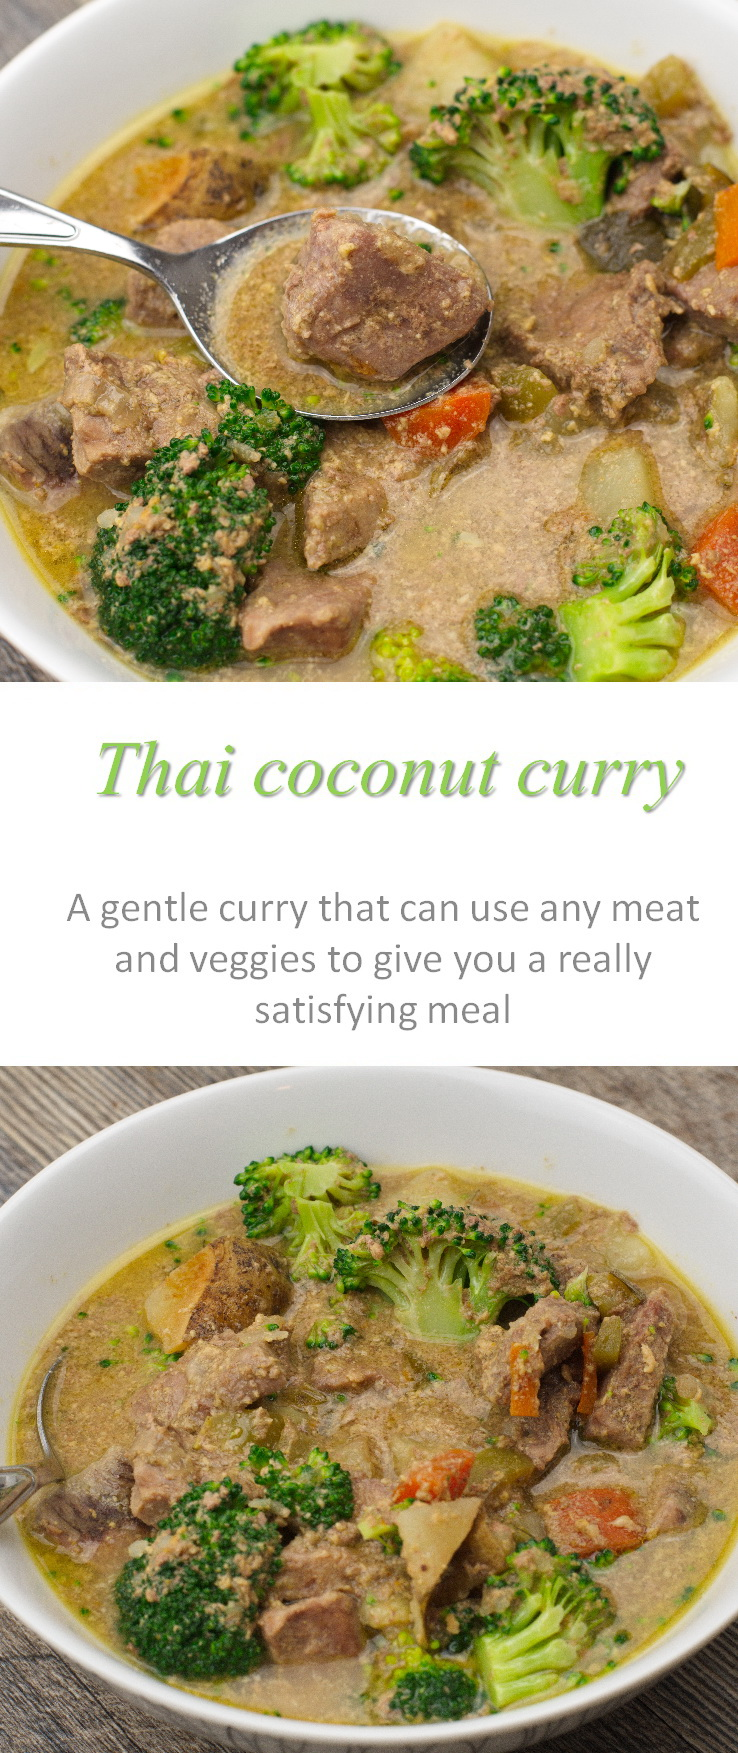 Thai beef coconut curry - with spices gentle enough for the whole family, but with a taste that will transport you to another country!  And Whole30 compliant too! #curry